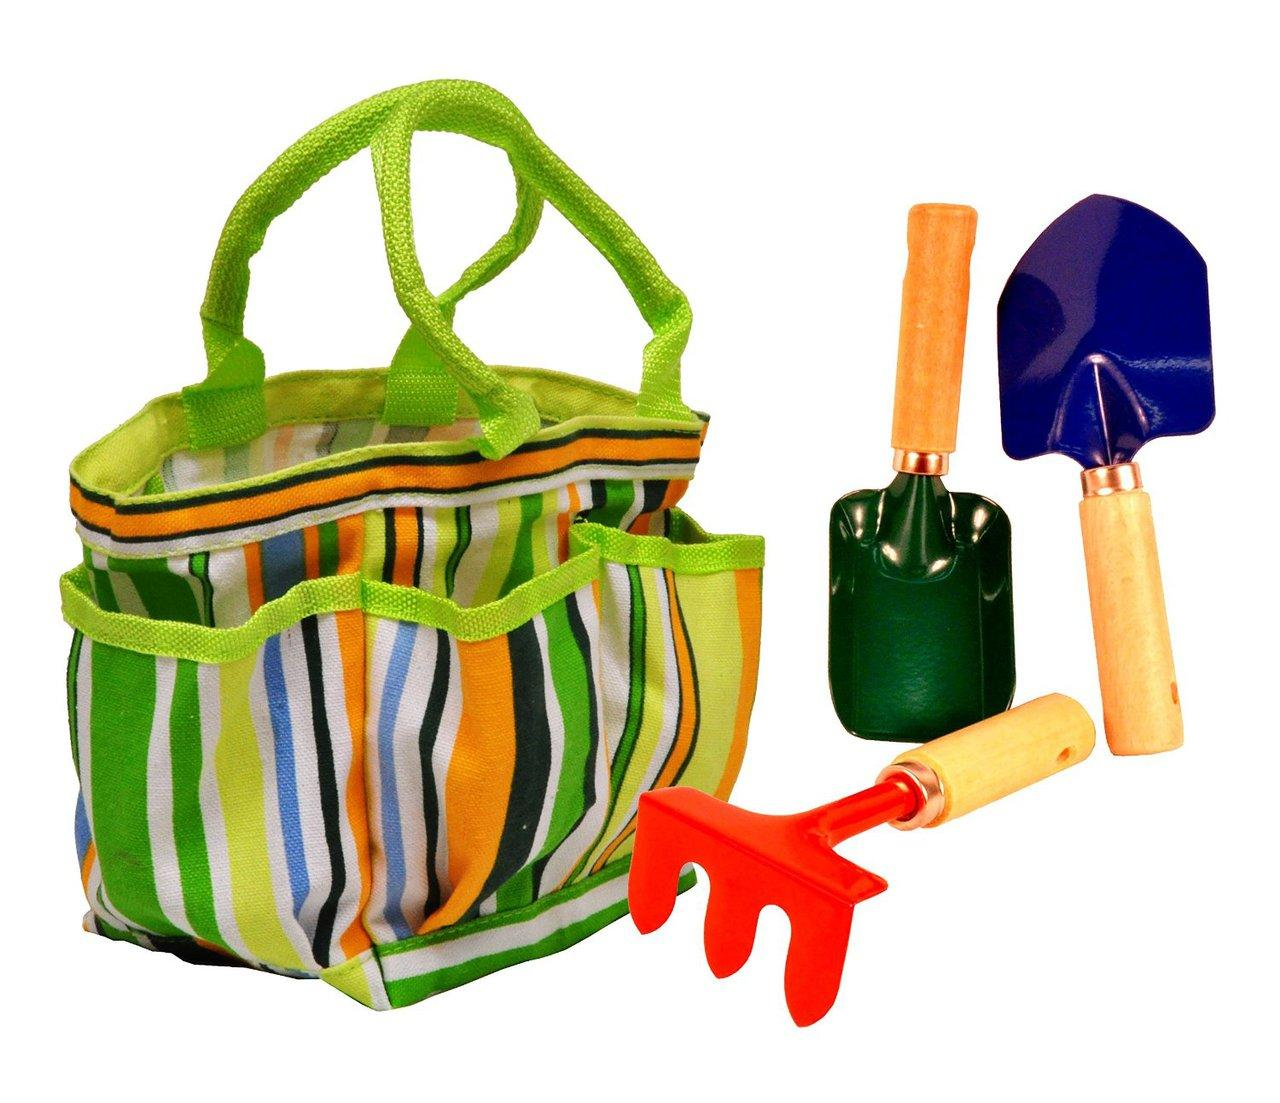 Kids ' Garden Tote With Tools